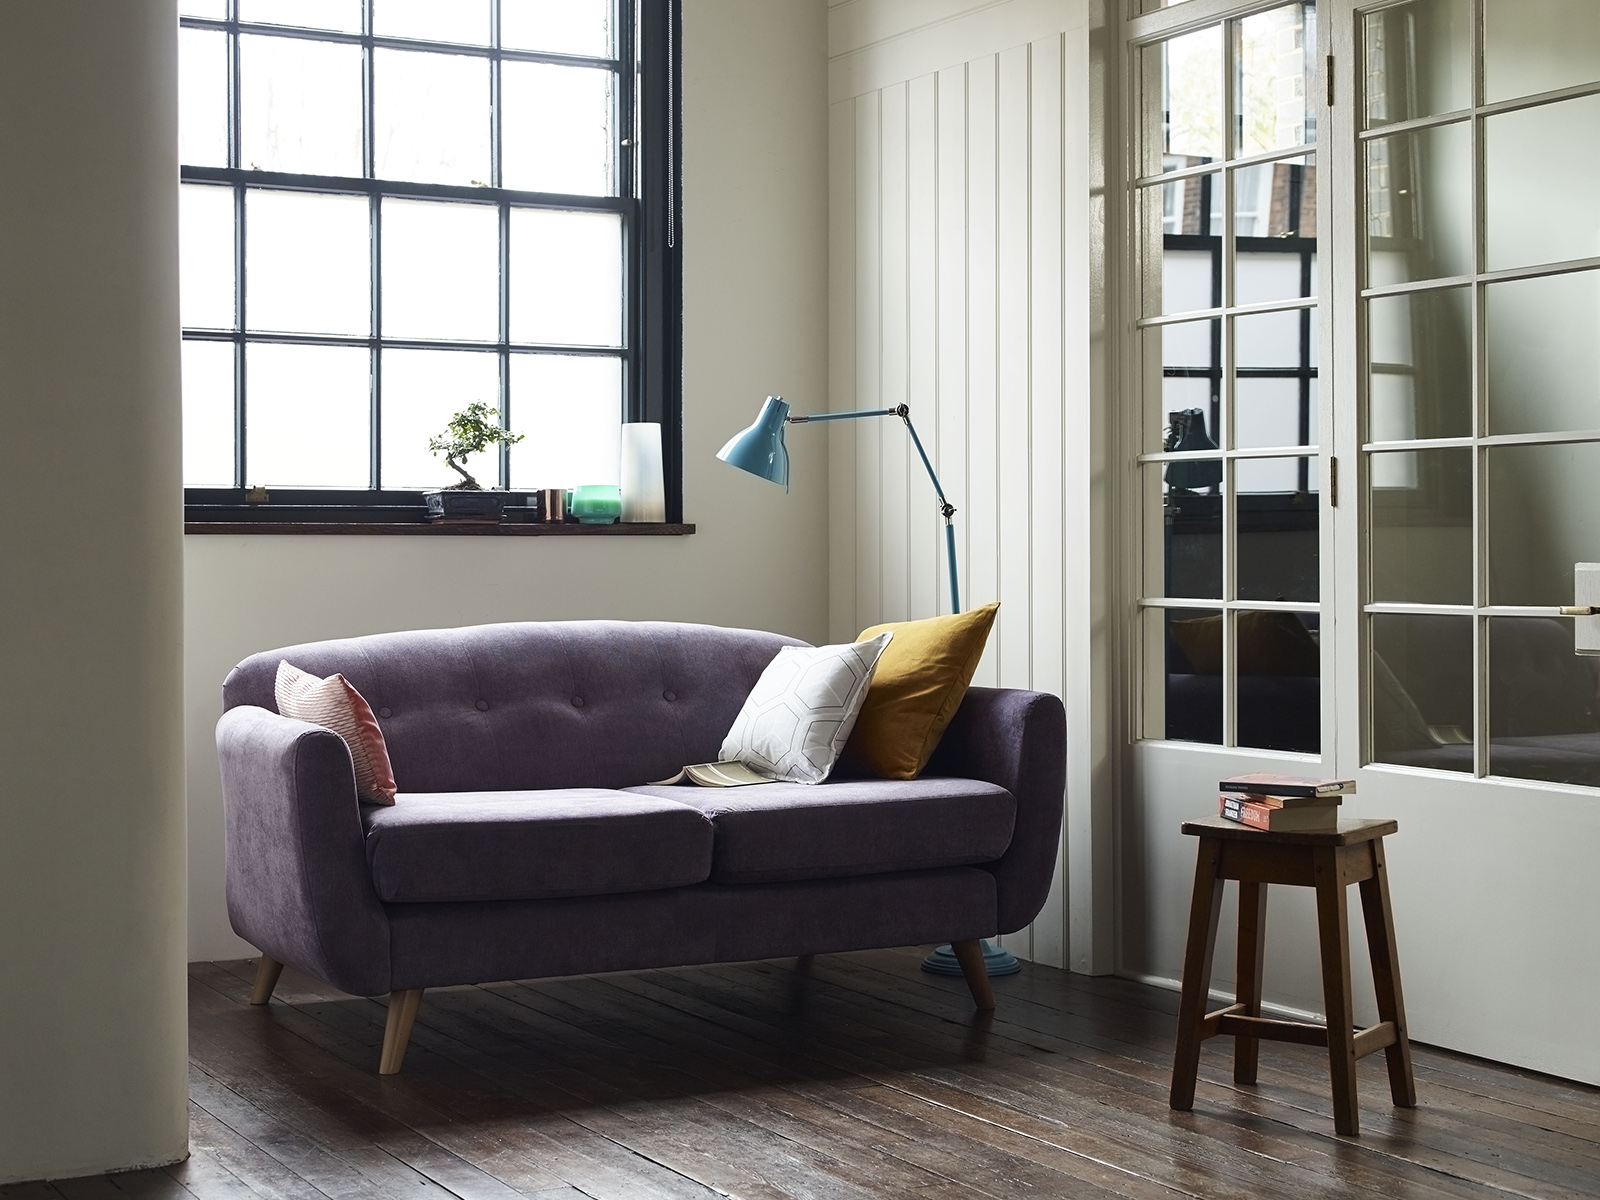 When designing small psaces choose furniture that is compact in design with slender arms and raised on legs. The capsule range from DFS is especially deisgned for small rooms. For more ideas on small space living listen to The Great Indoors Podcast by Sophie Robinson and Kate watson Smyth here